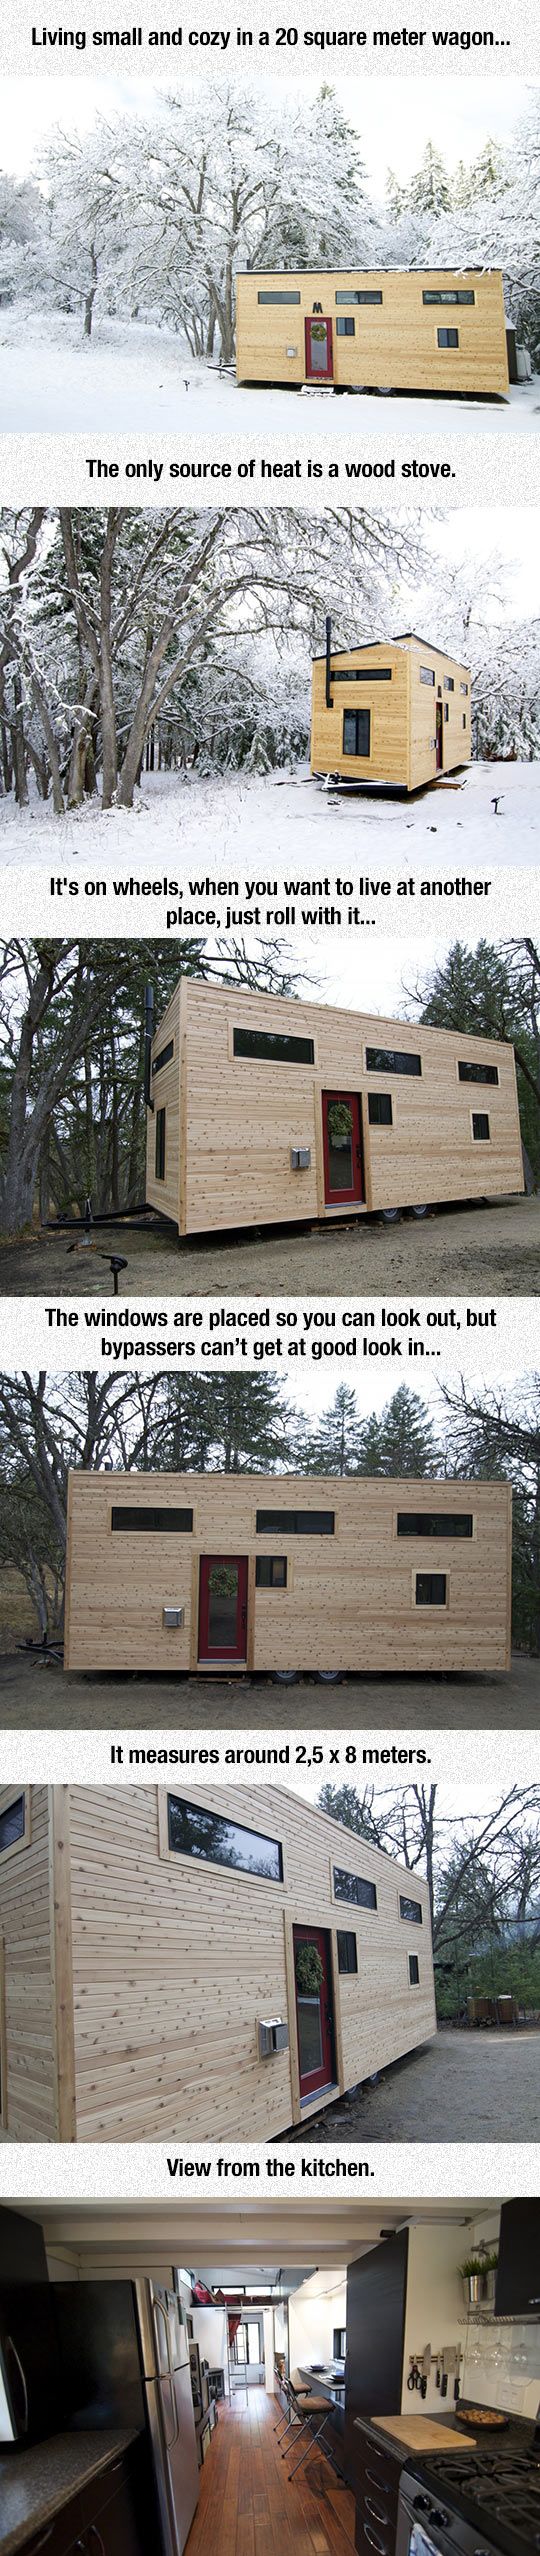 cool-small-cozy-wagon-home